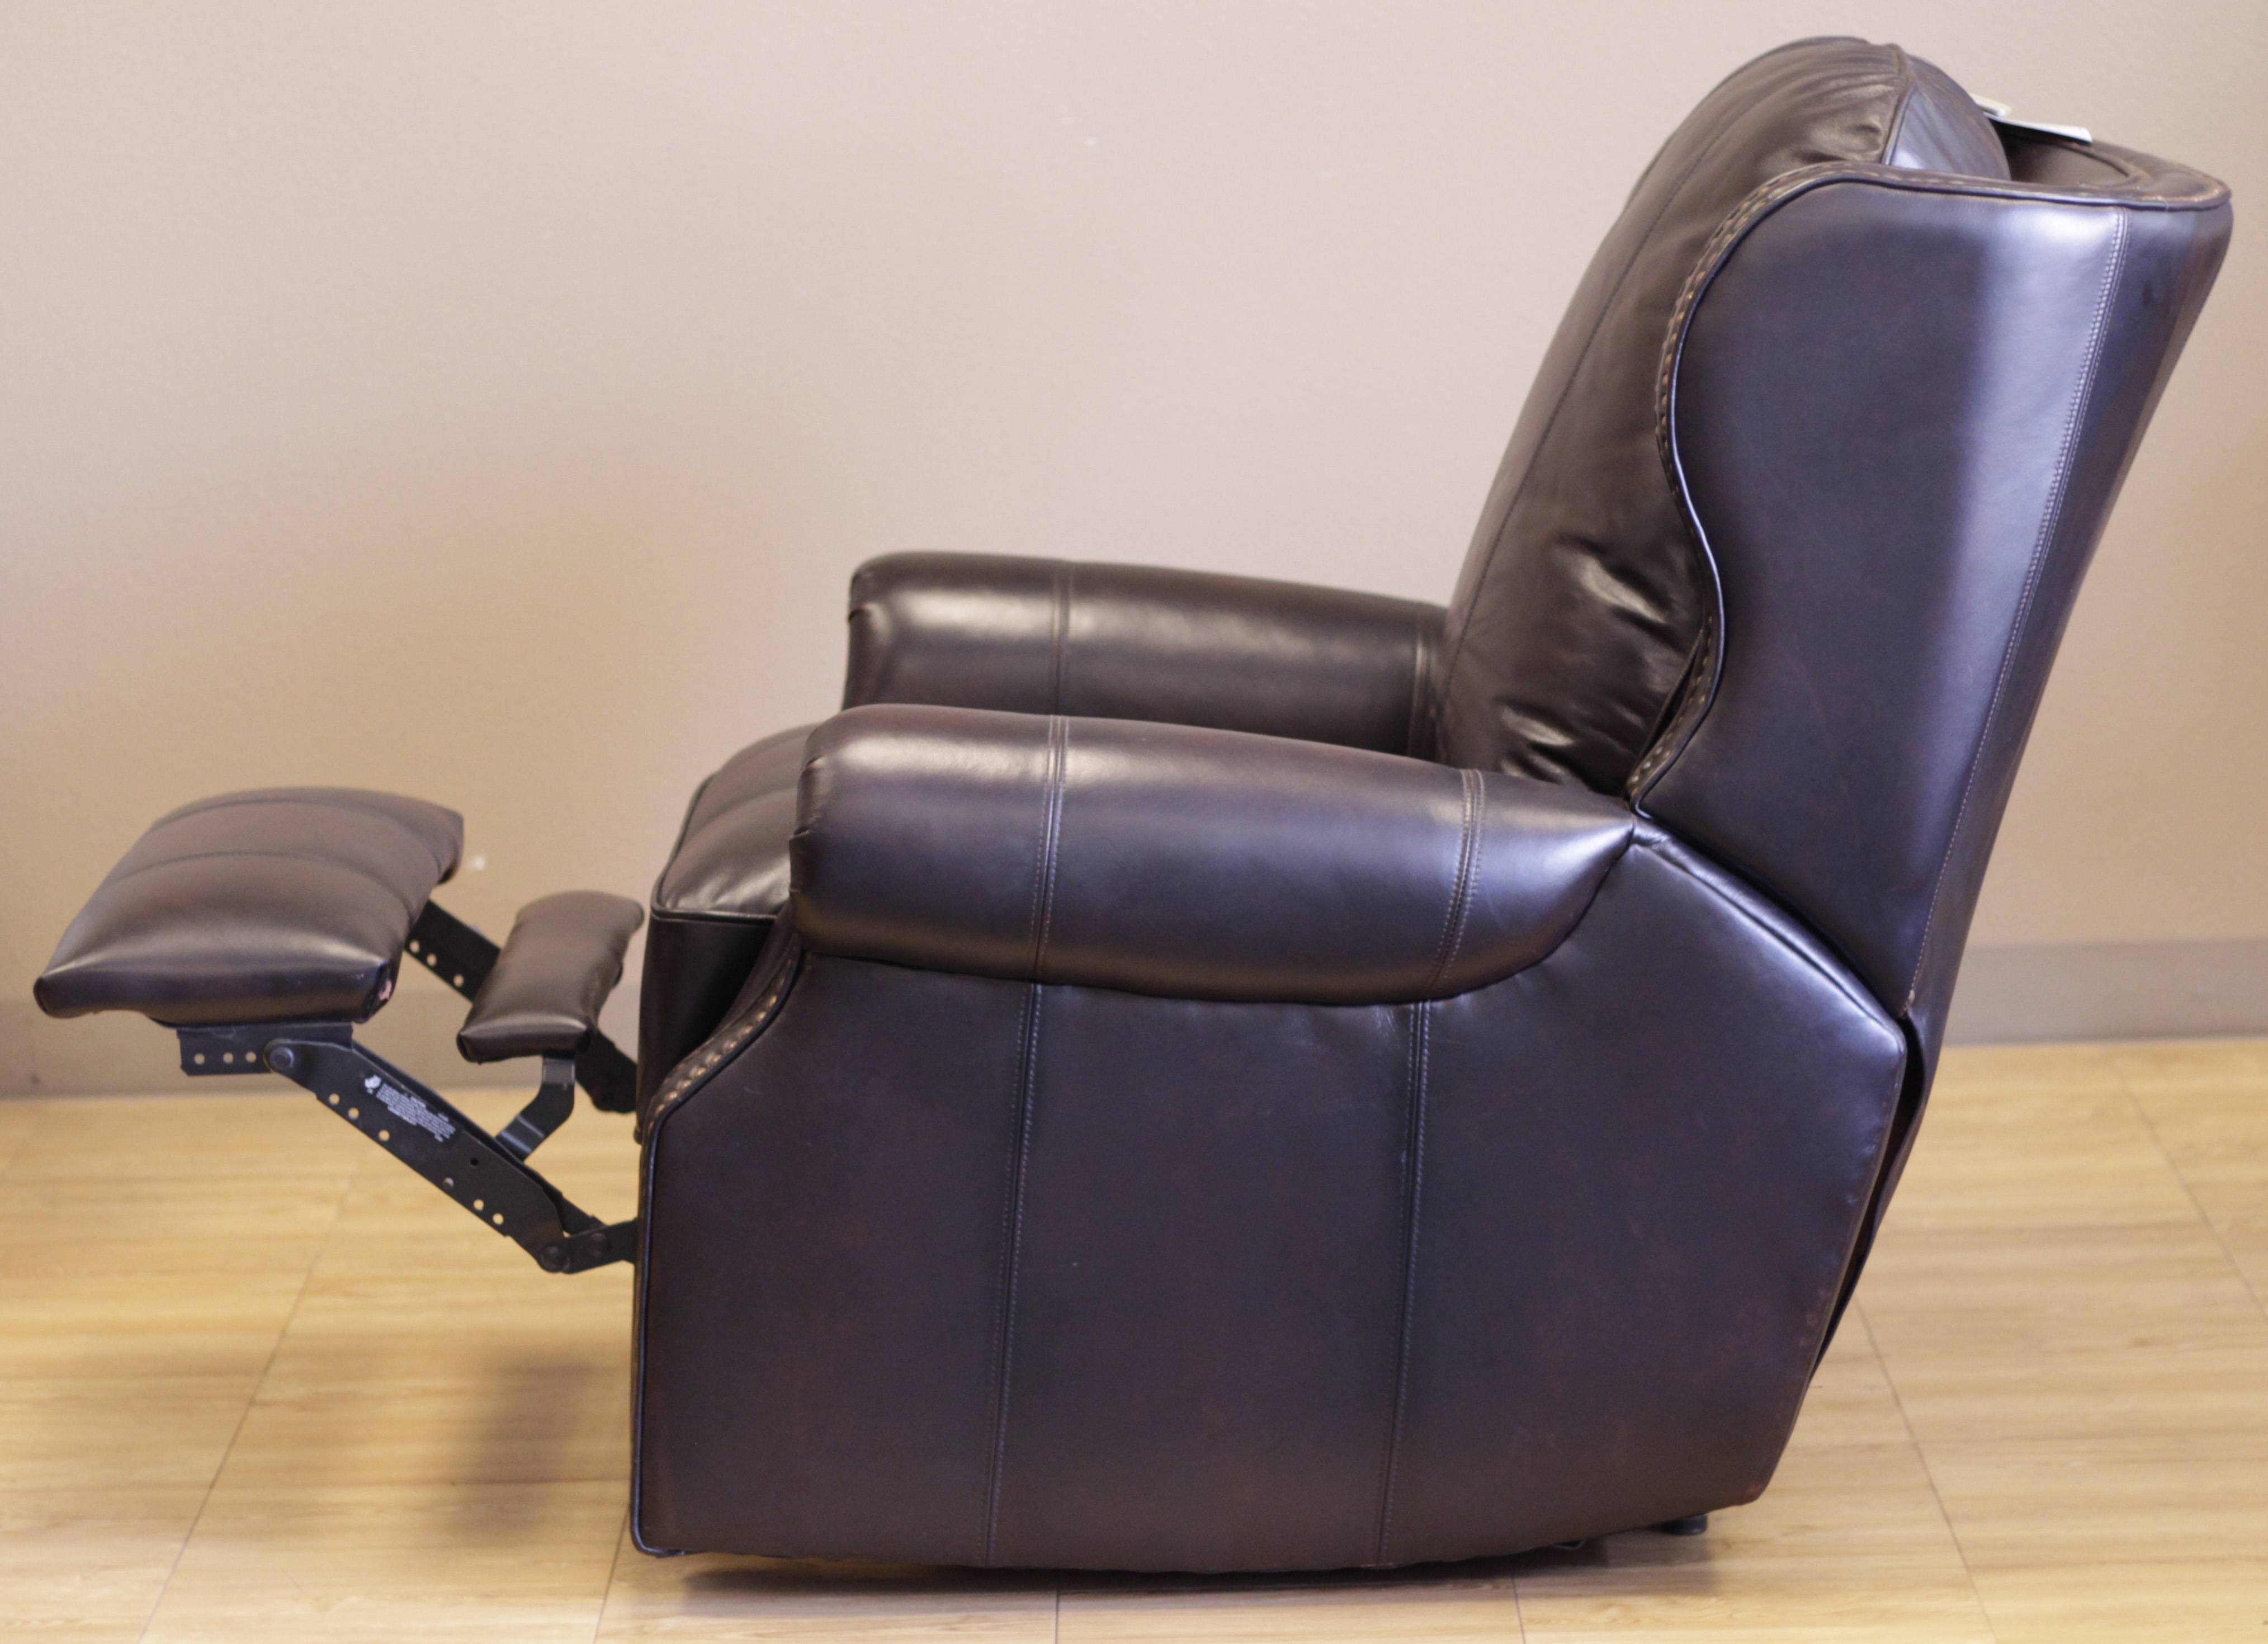 Barcalounger Bristol Ii Wall Hugger Recliner Chair - Leather for Barcalounger Sofas (Image 4 of 15)